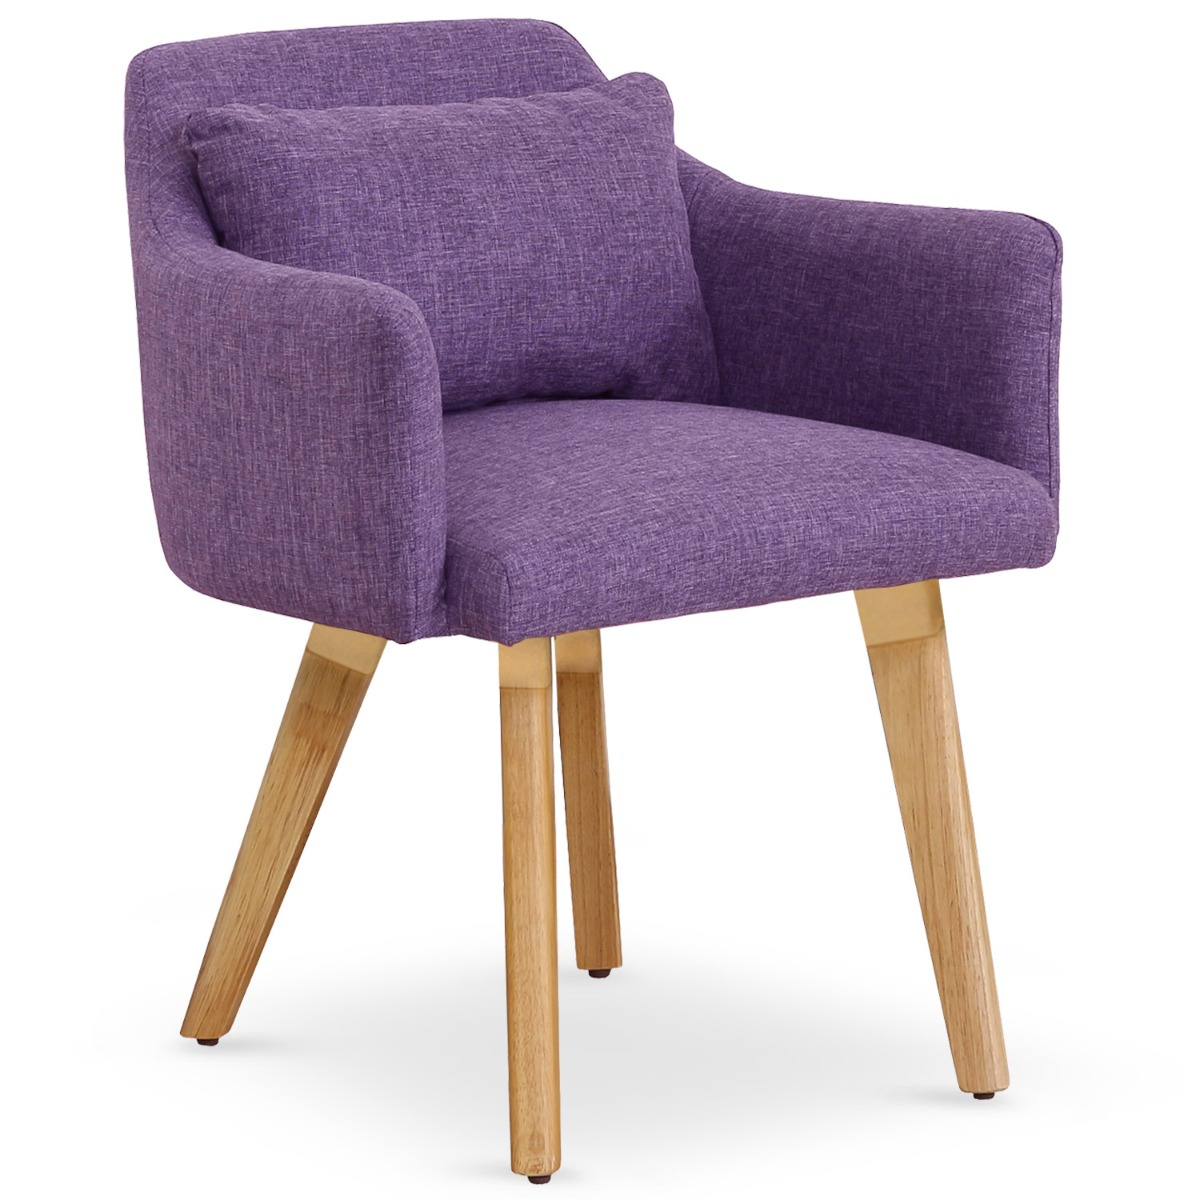 Chaise / Fauteuil scandinave Gybson Tissu Violet